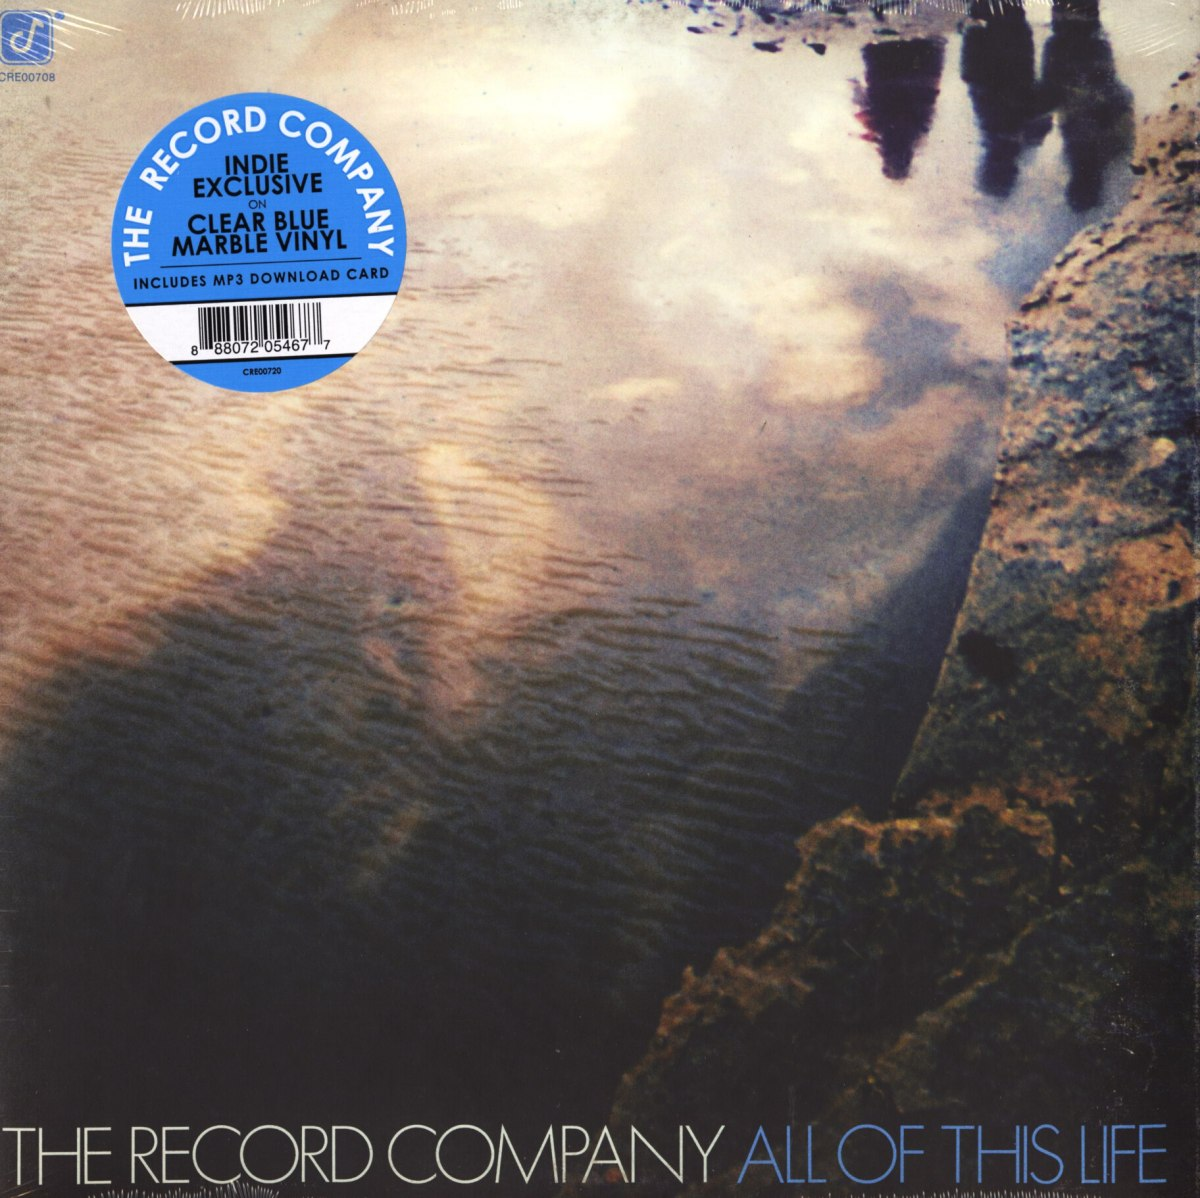 The Record Company - All Of This Life - Limited, Clear Blue Marble, Colored Vinyl, LP, Concord Records, 2018